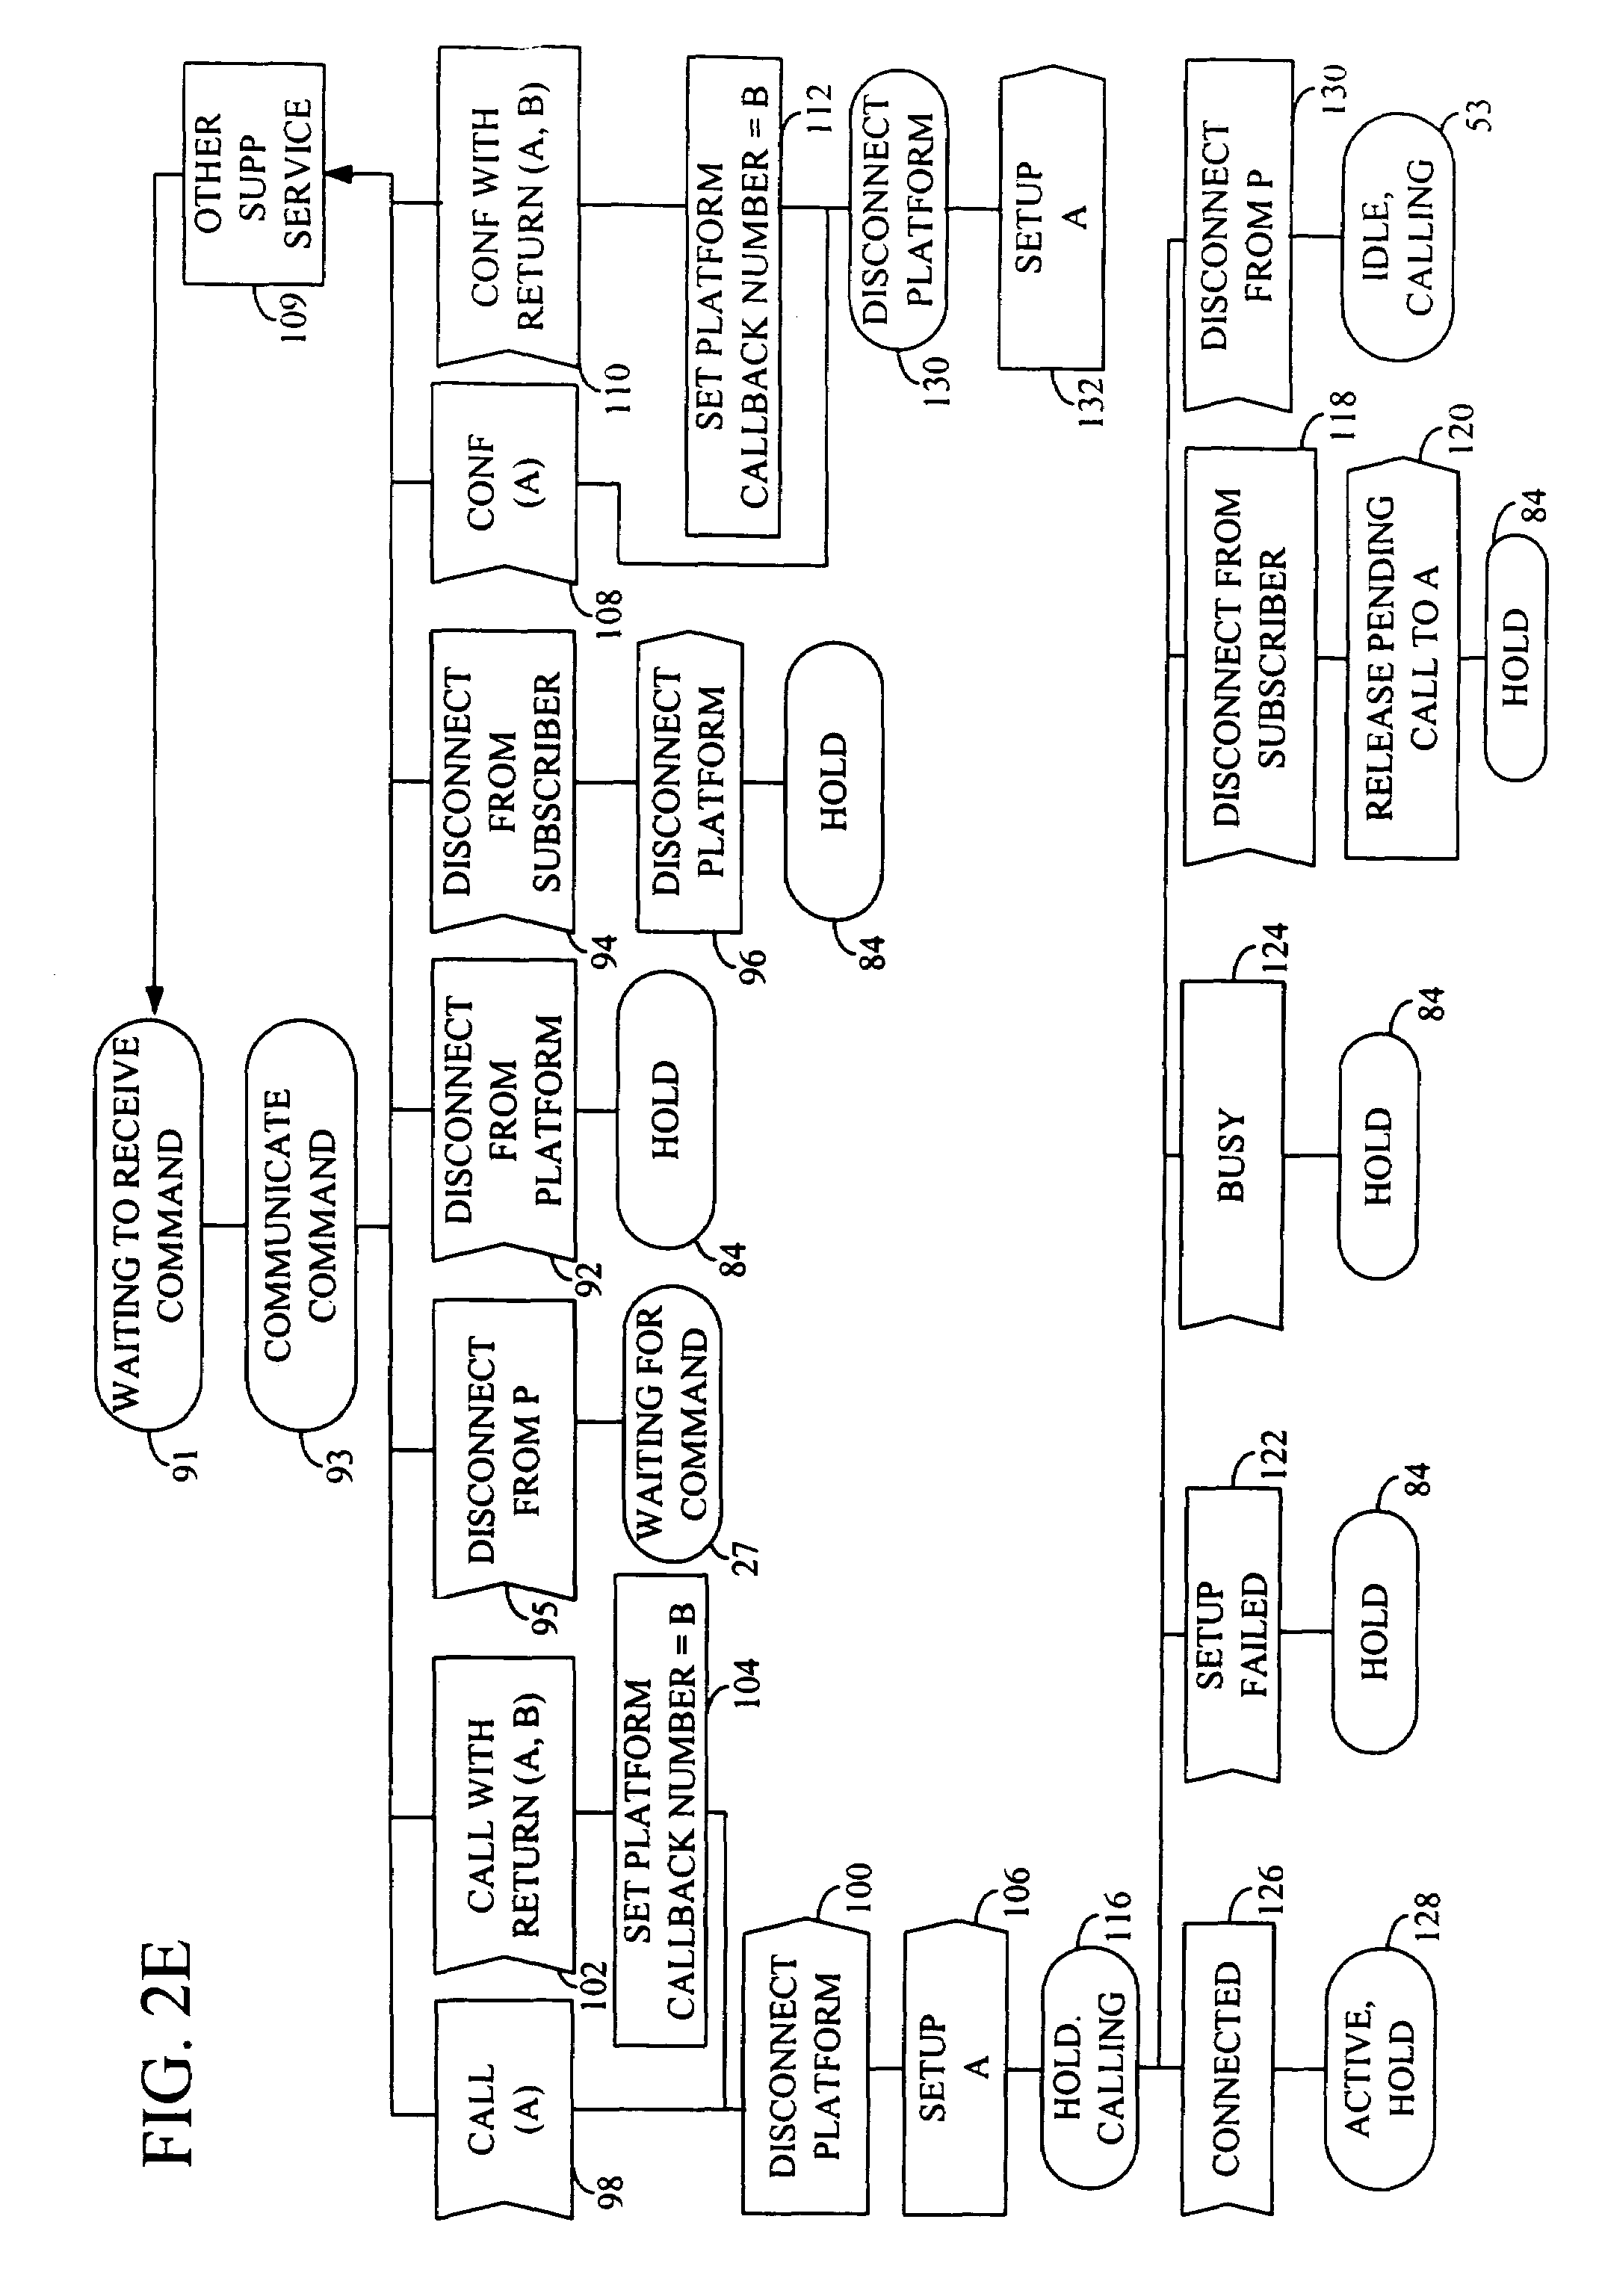 Patent Us7280821 Outgoing Call Handling System And Method Google